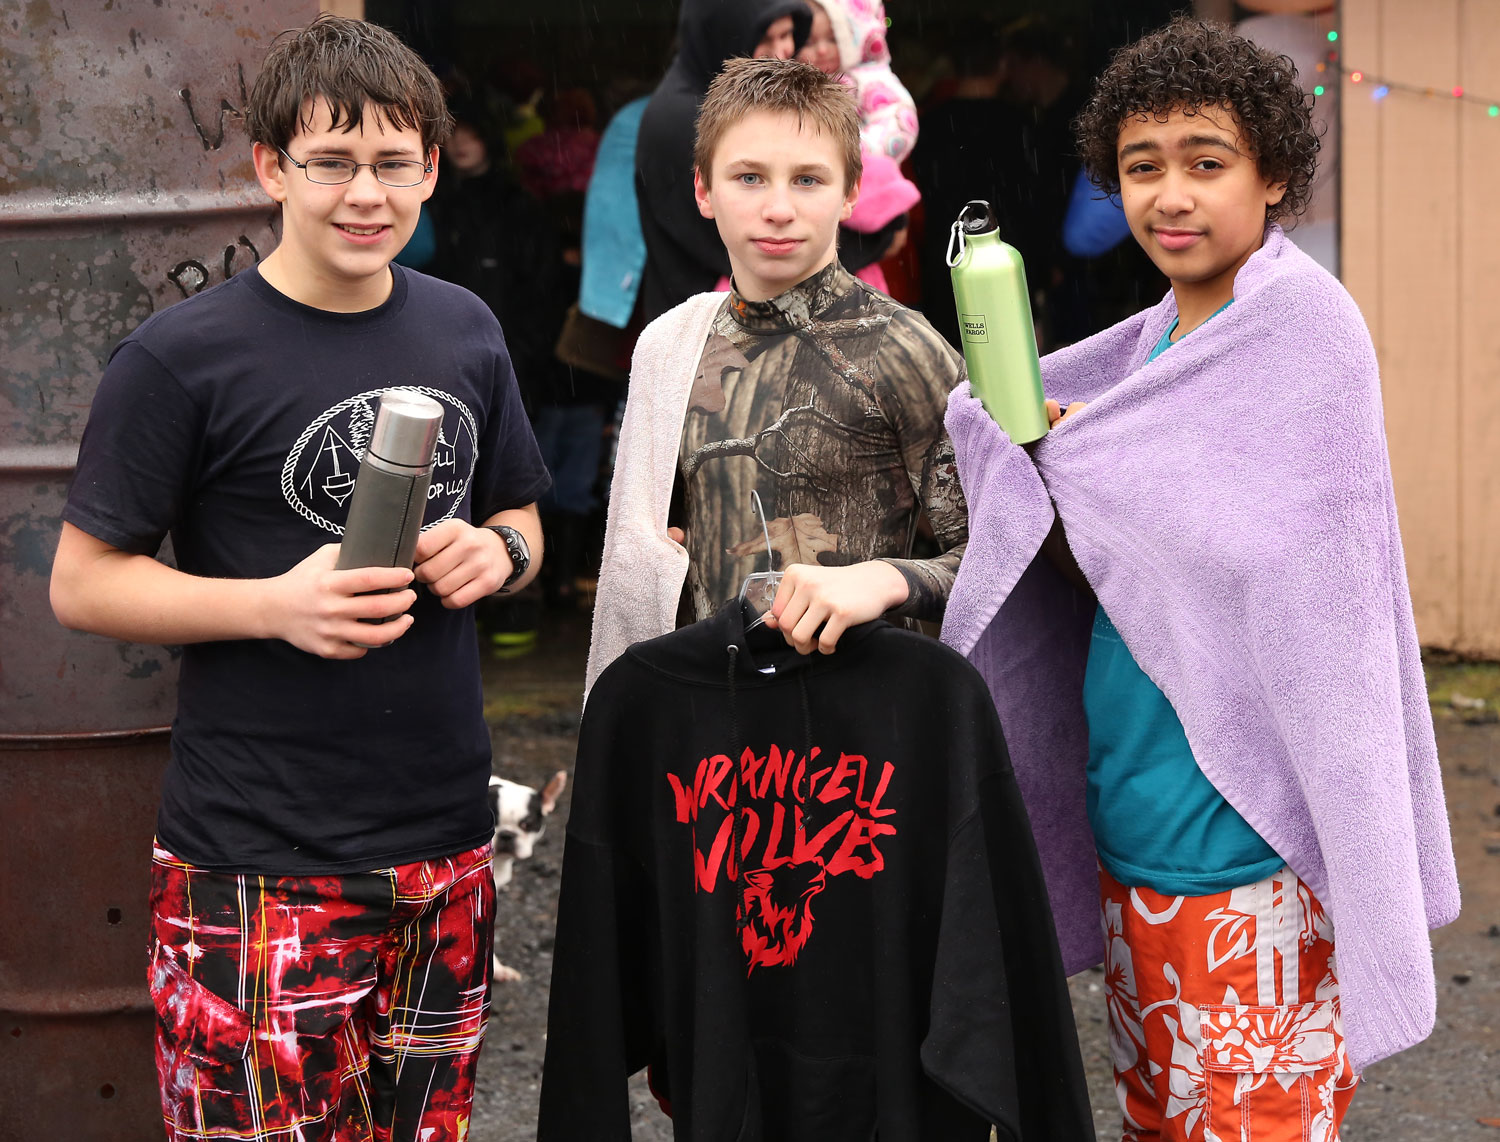 Winners of a thermos, a Wrangell Wolves sweatshirt, and a water bottle.